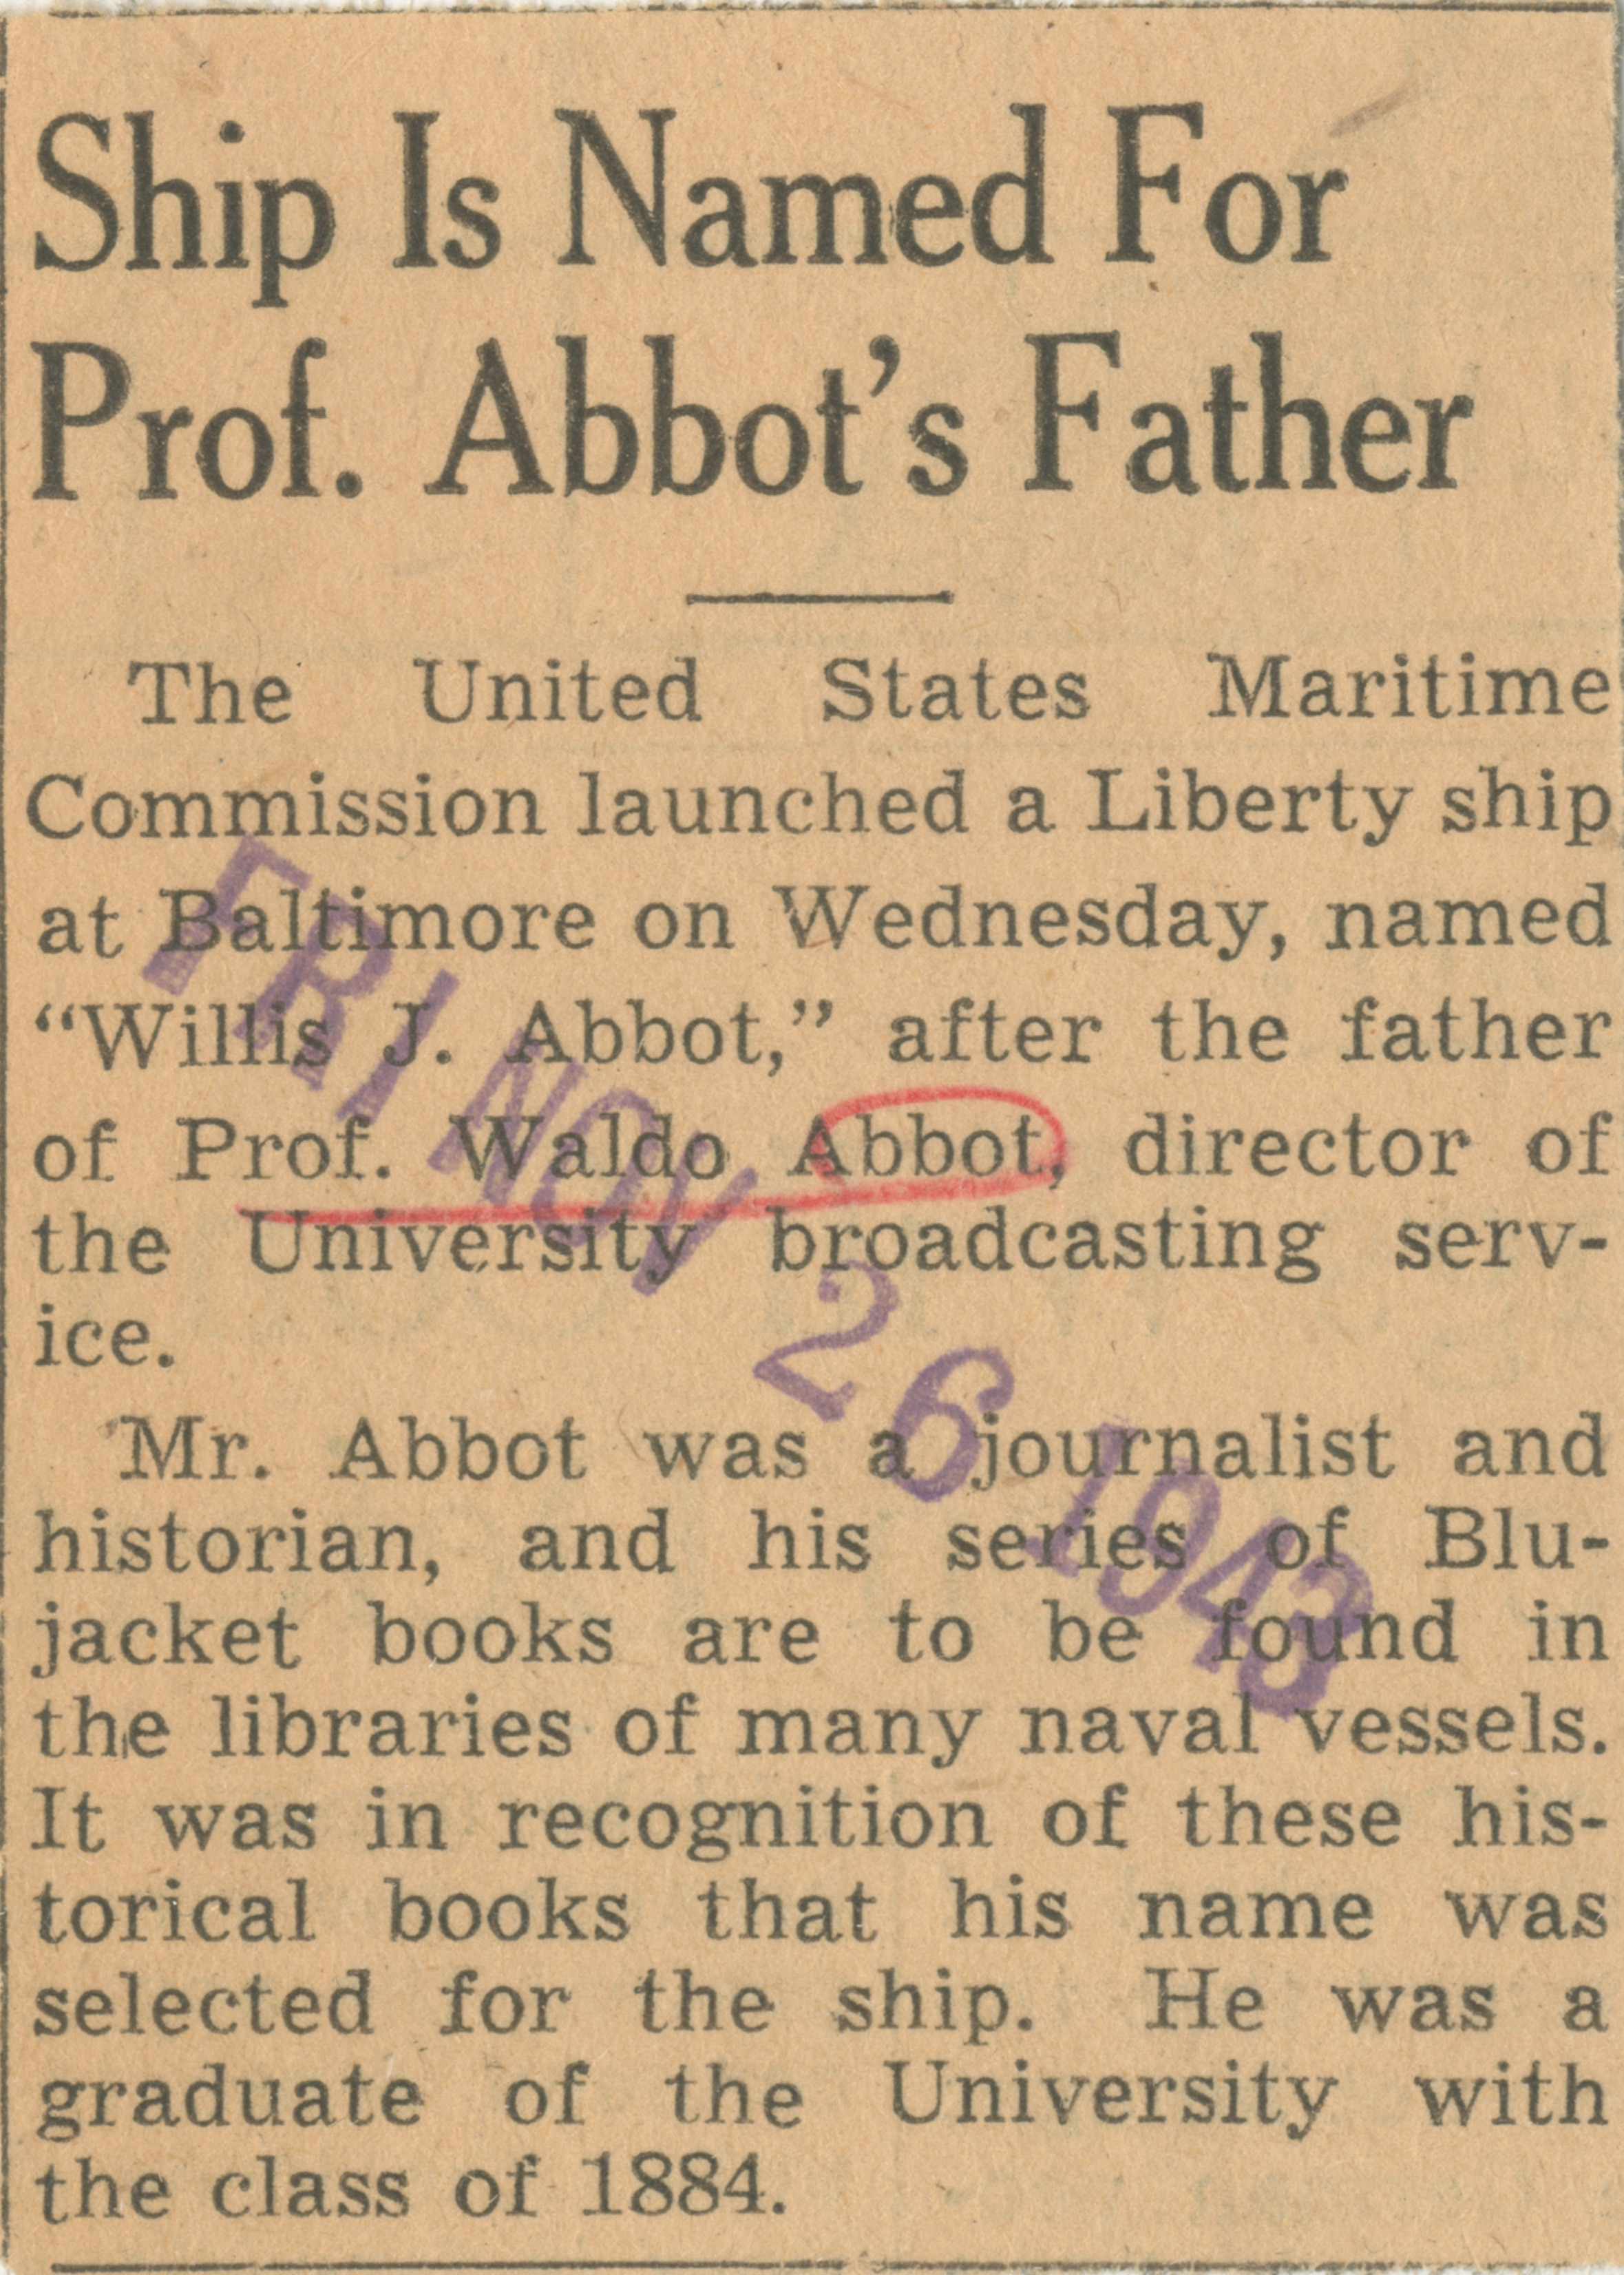 Ship Is Named For Prof. Abbot's Father image